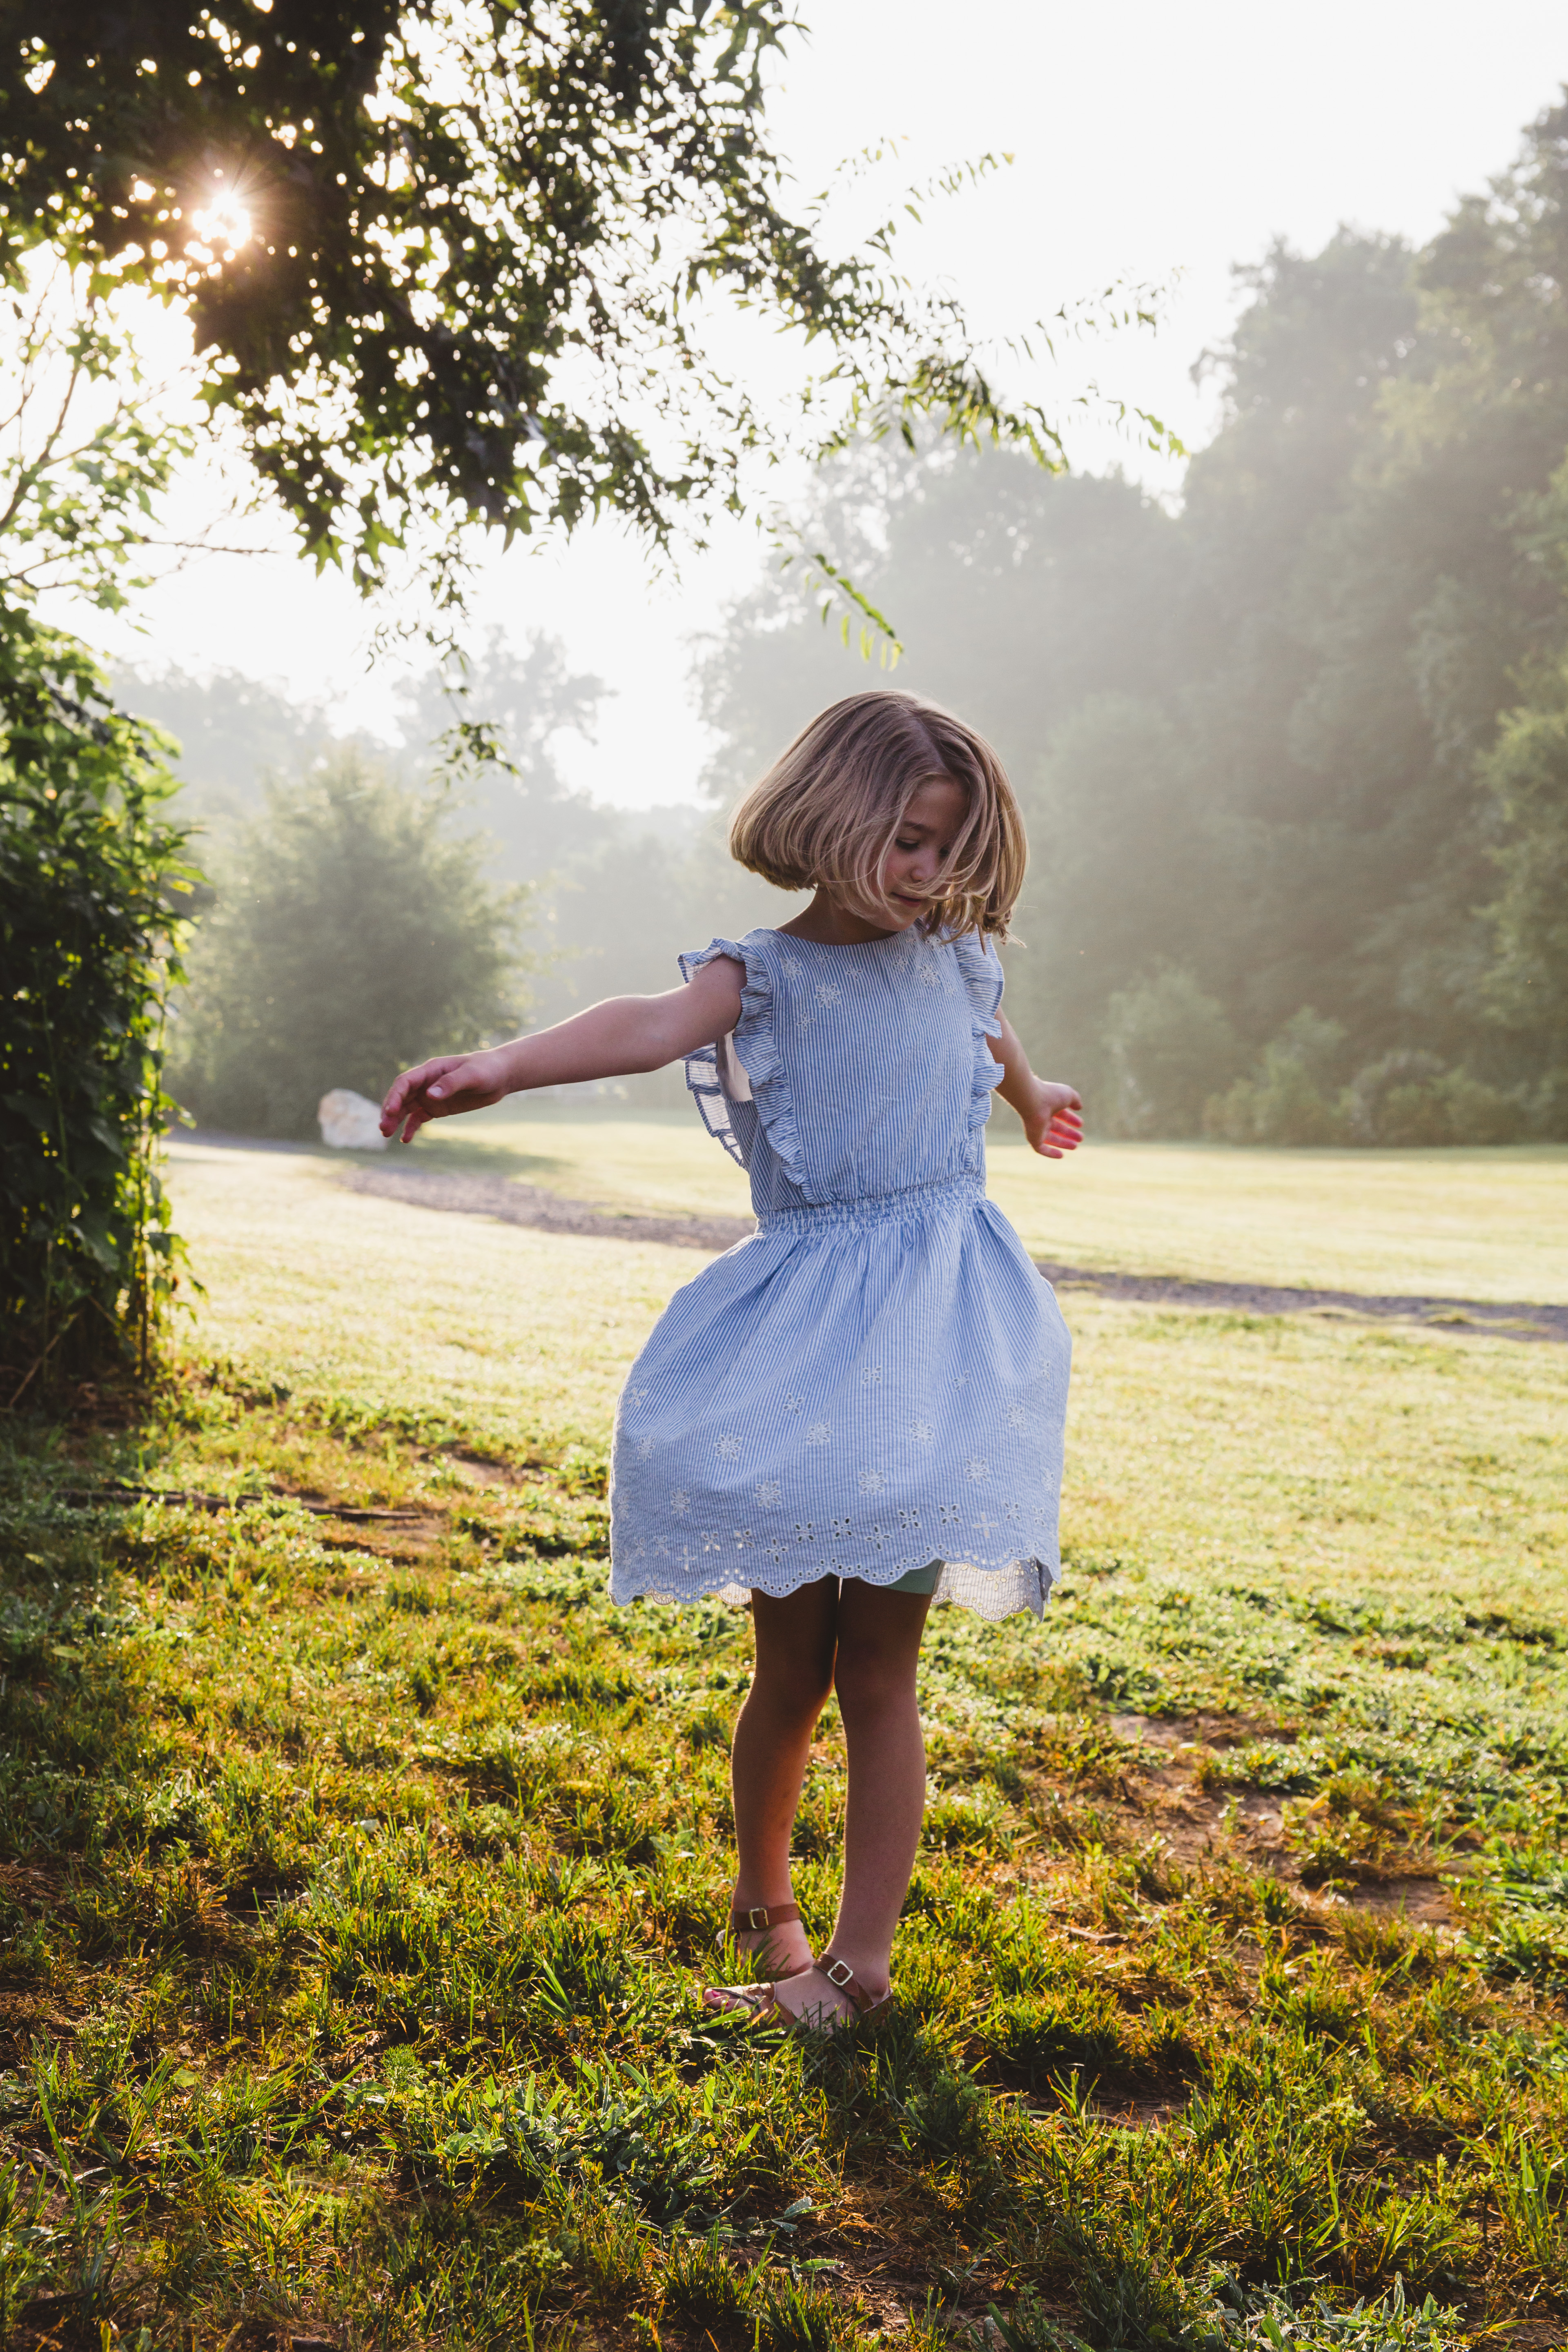 Girl twirling in the park